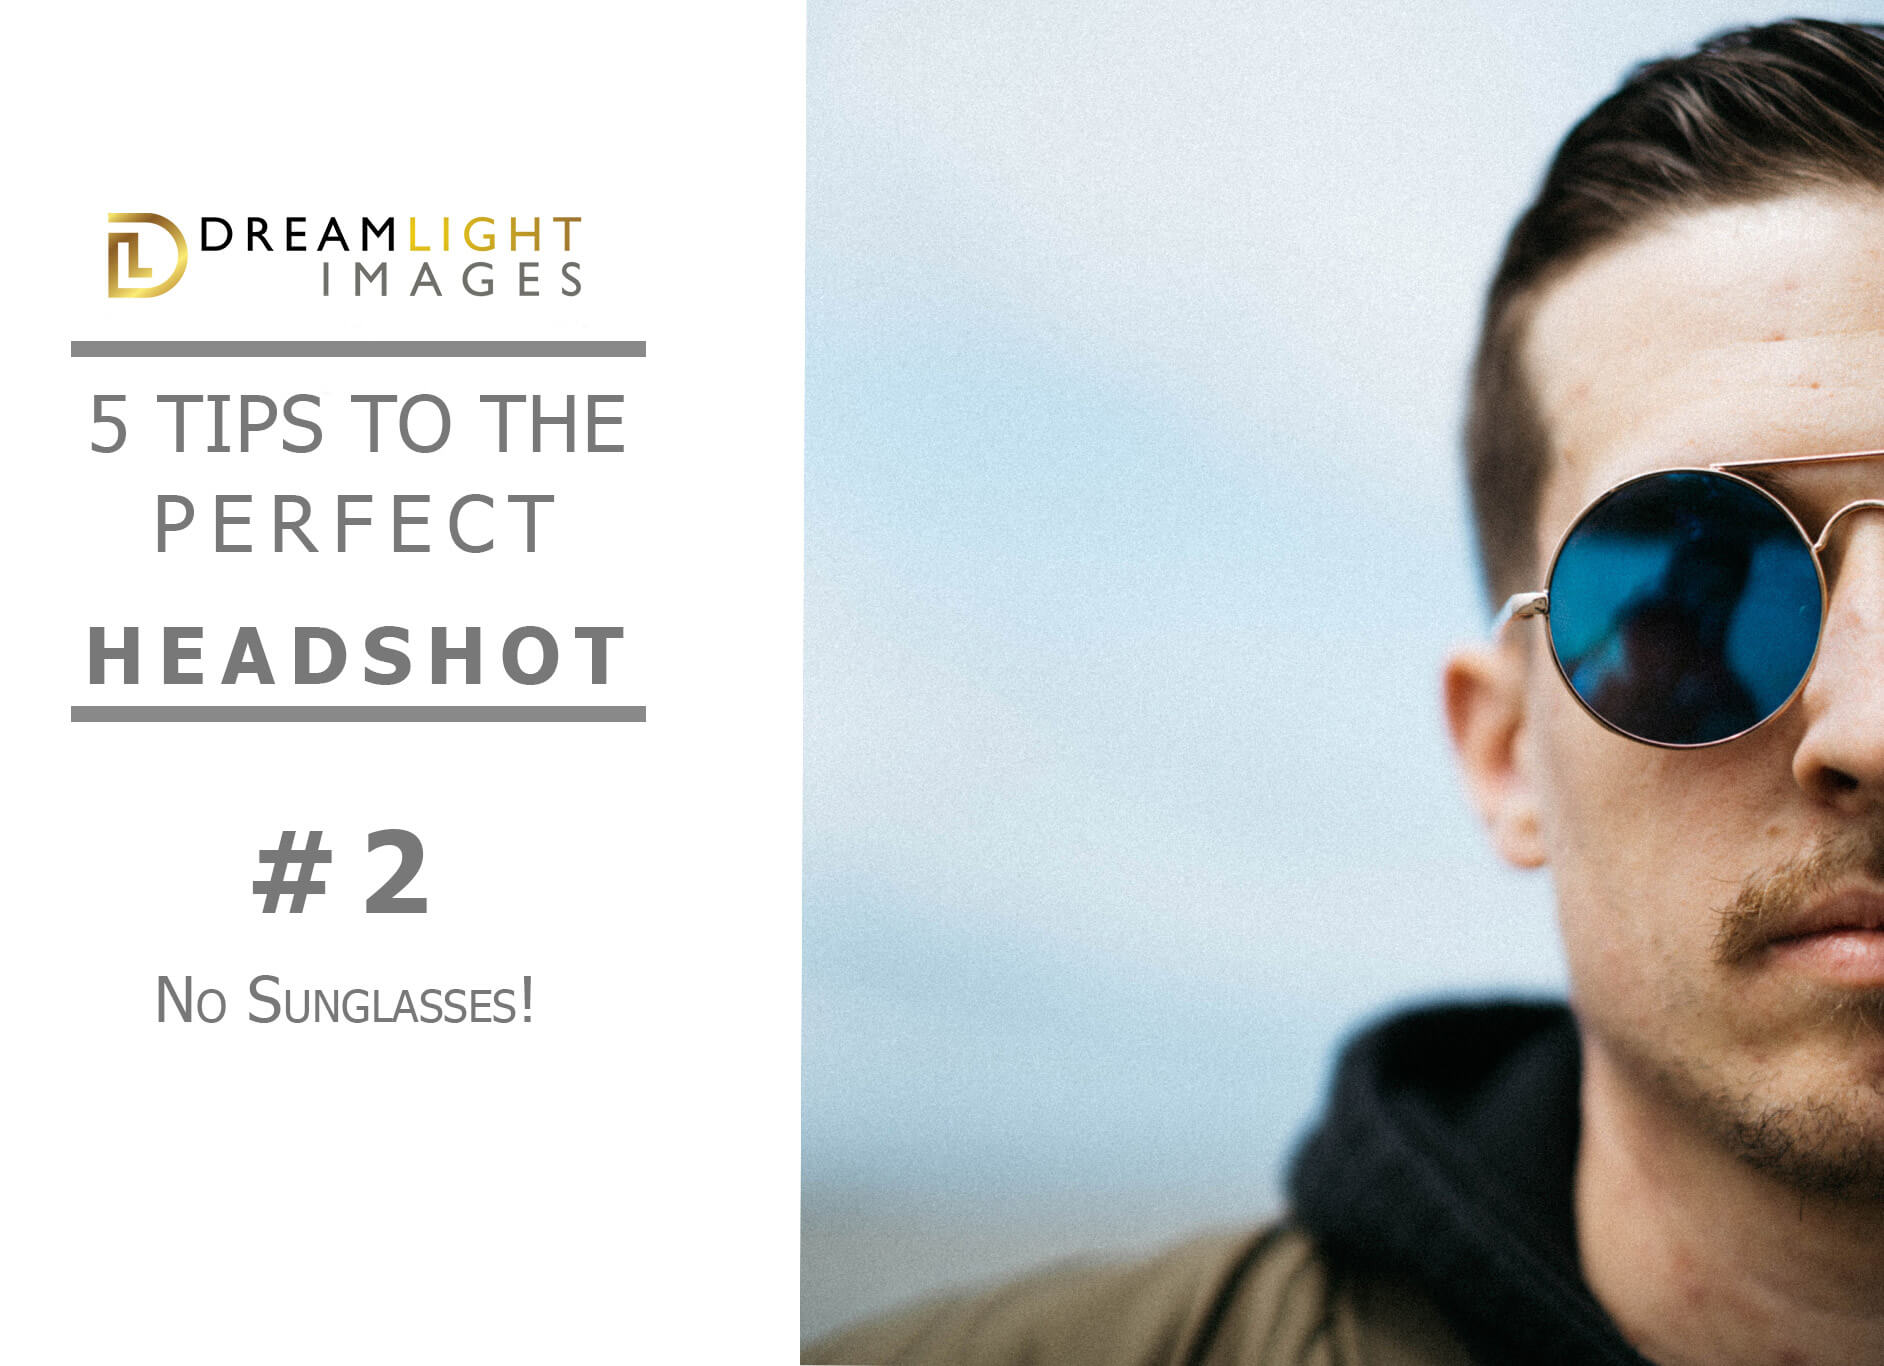 5 Tips To The Perfect Headshot: #2 – No Sunglasses!